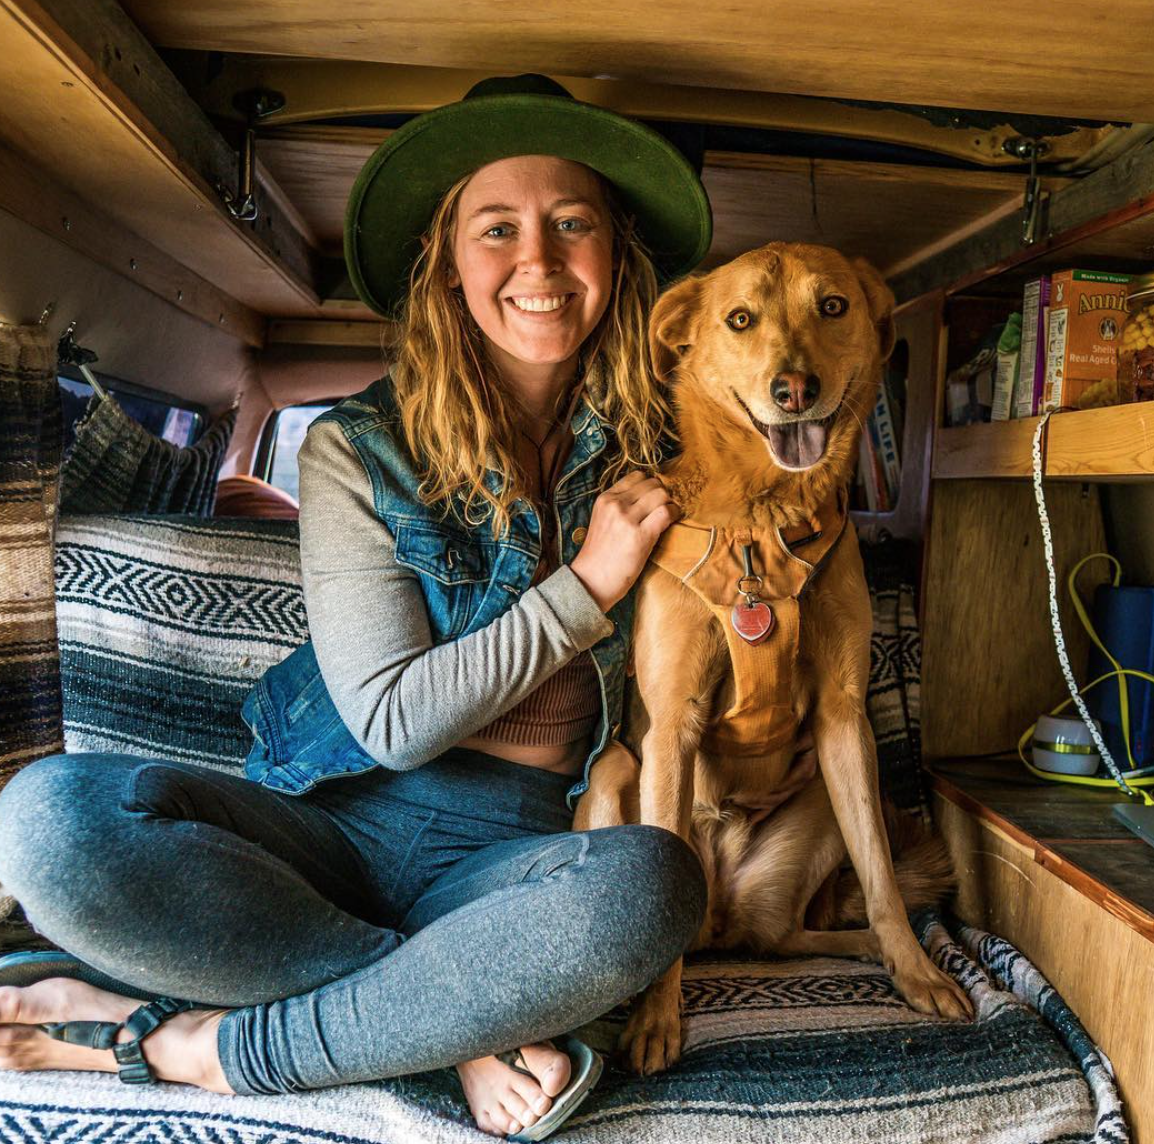 Van Life Instagram - tiny house tiny footprint